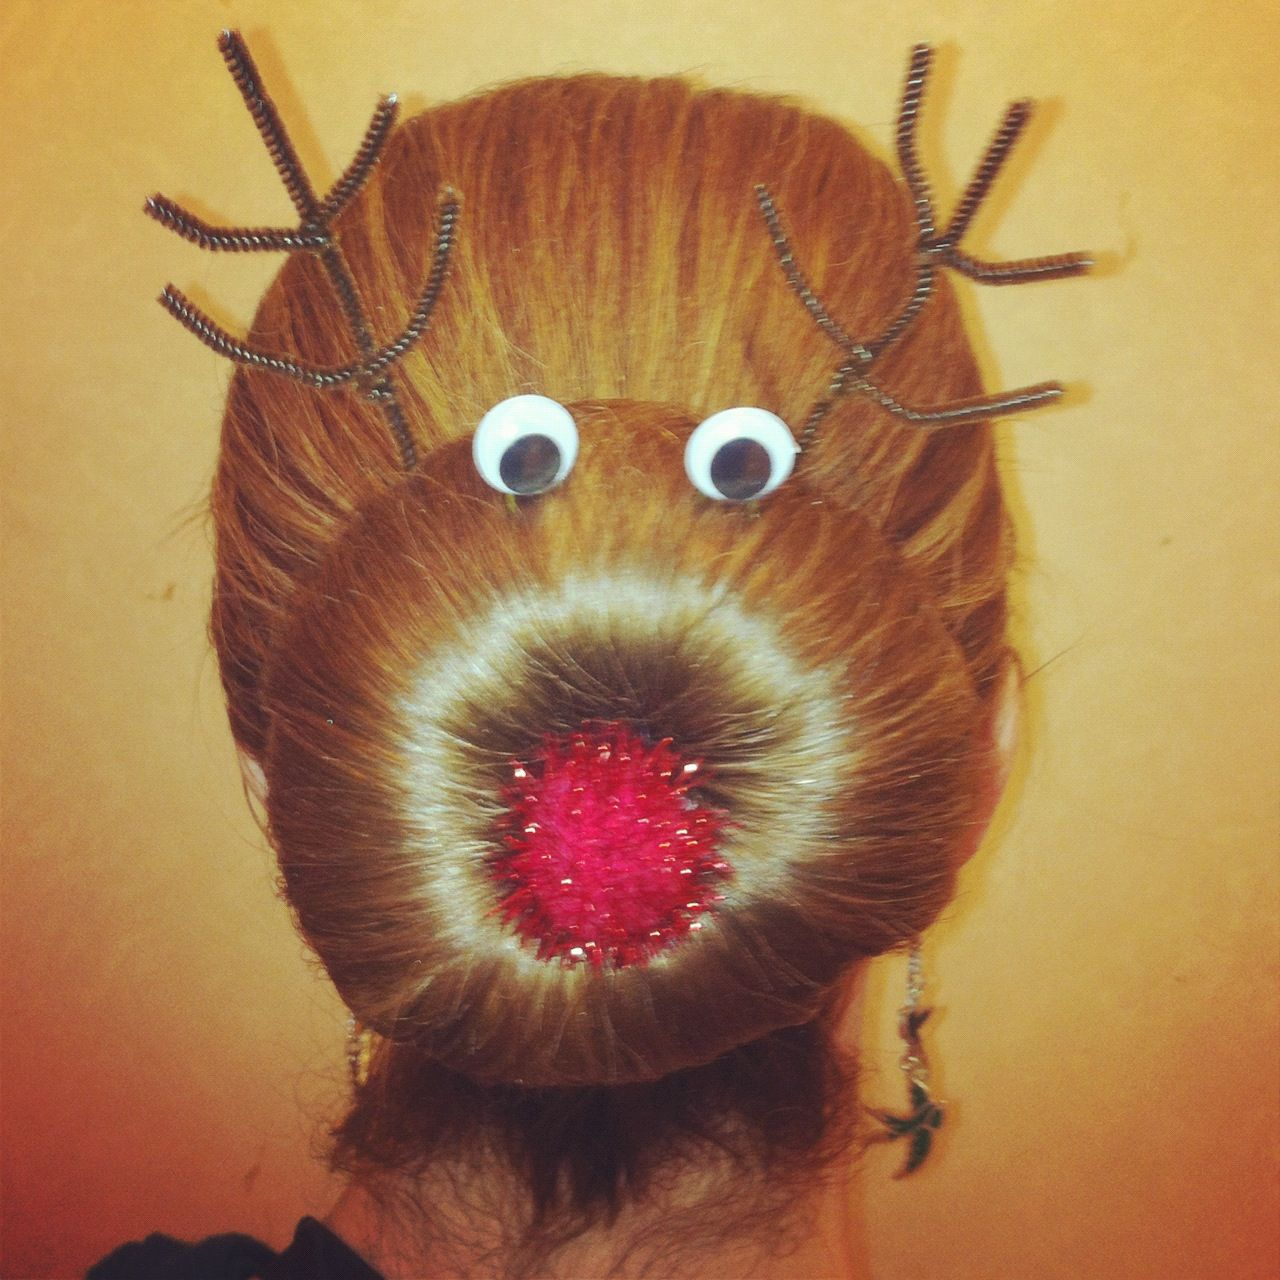 Wacky Christmas Party Ideas Part - 22: FESTIVE Hair For My Wacky Tacky Christmas Sweater Party